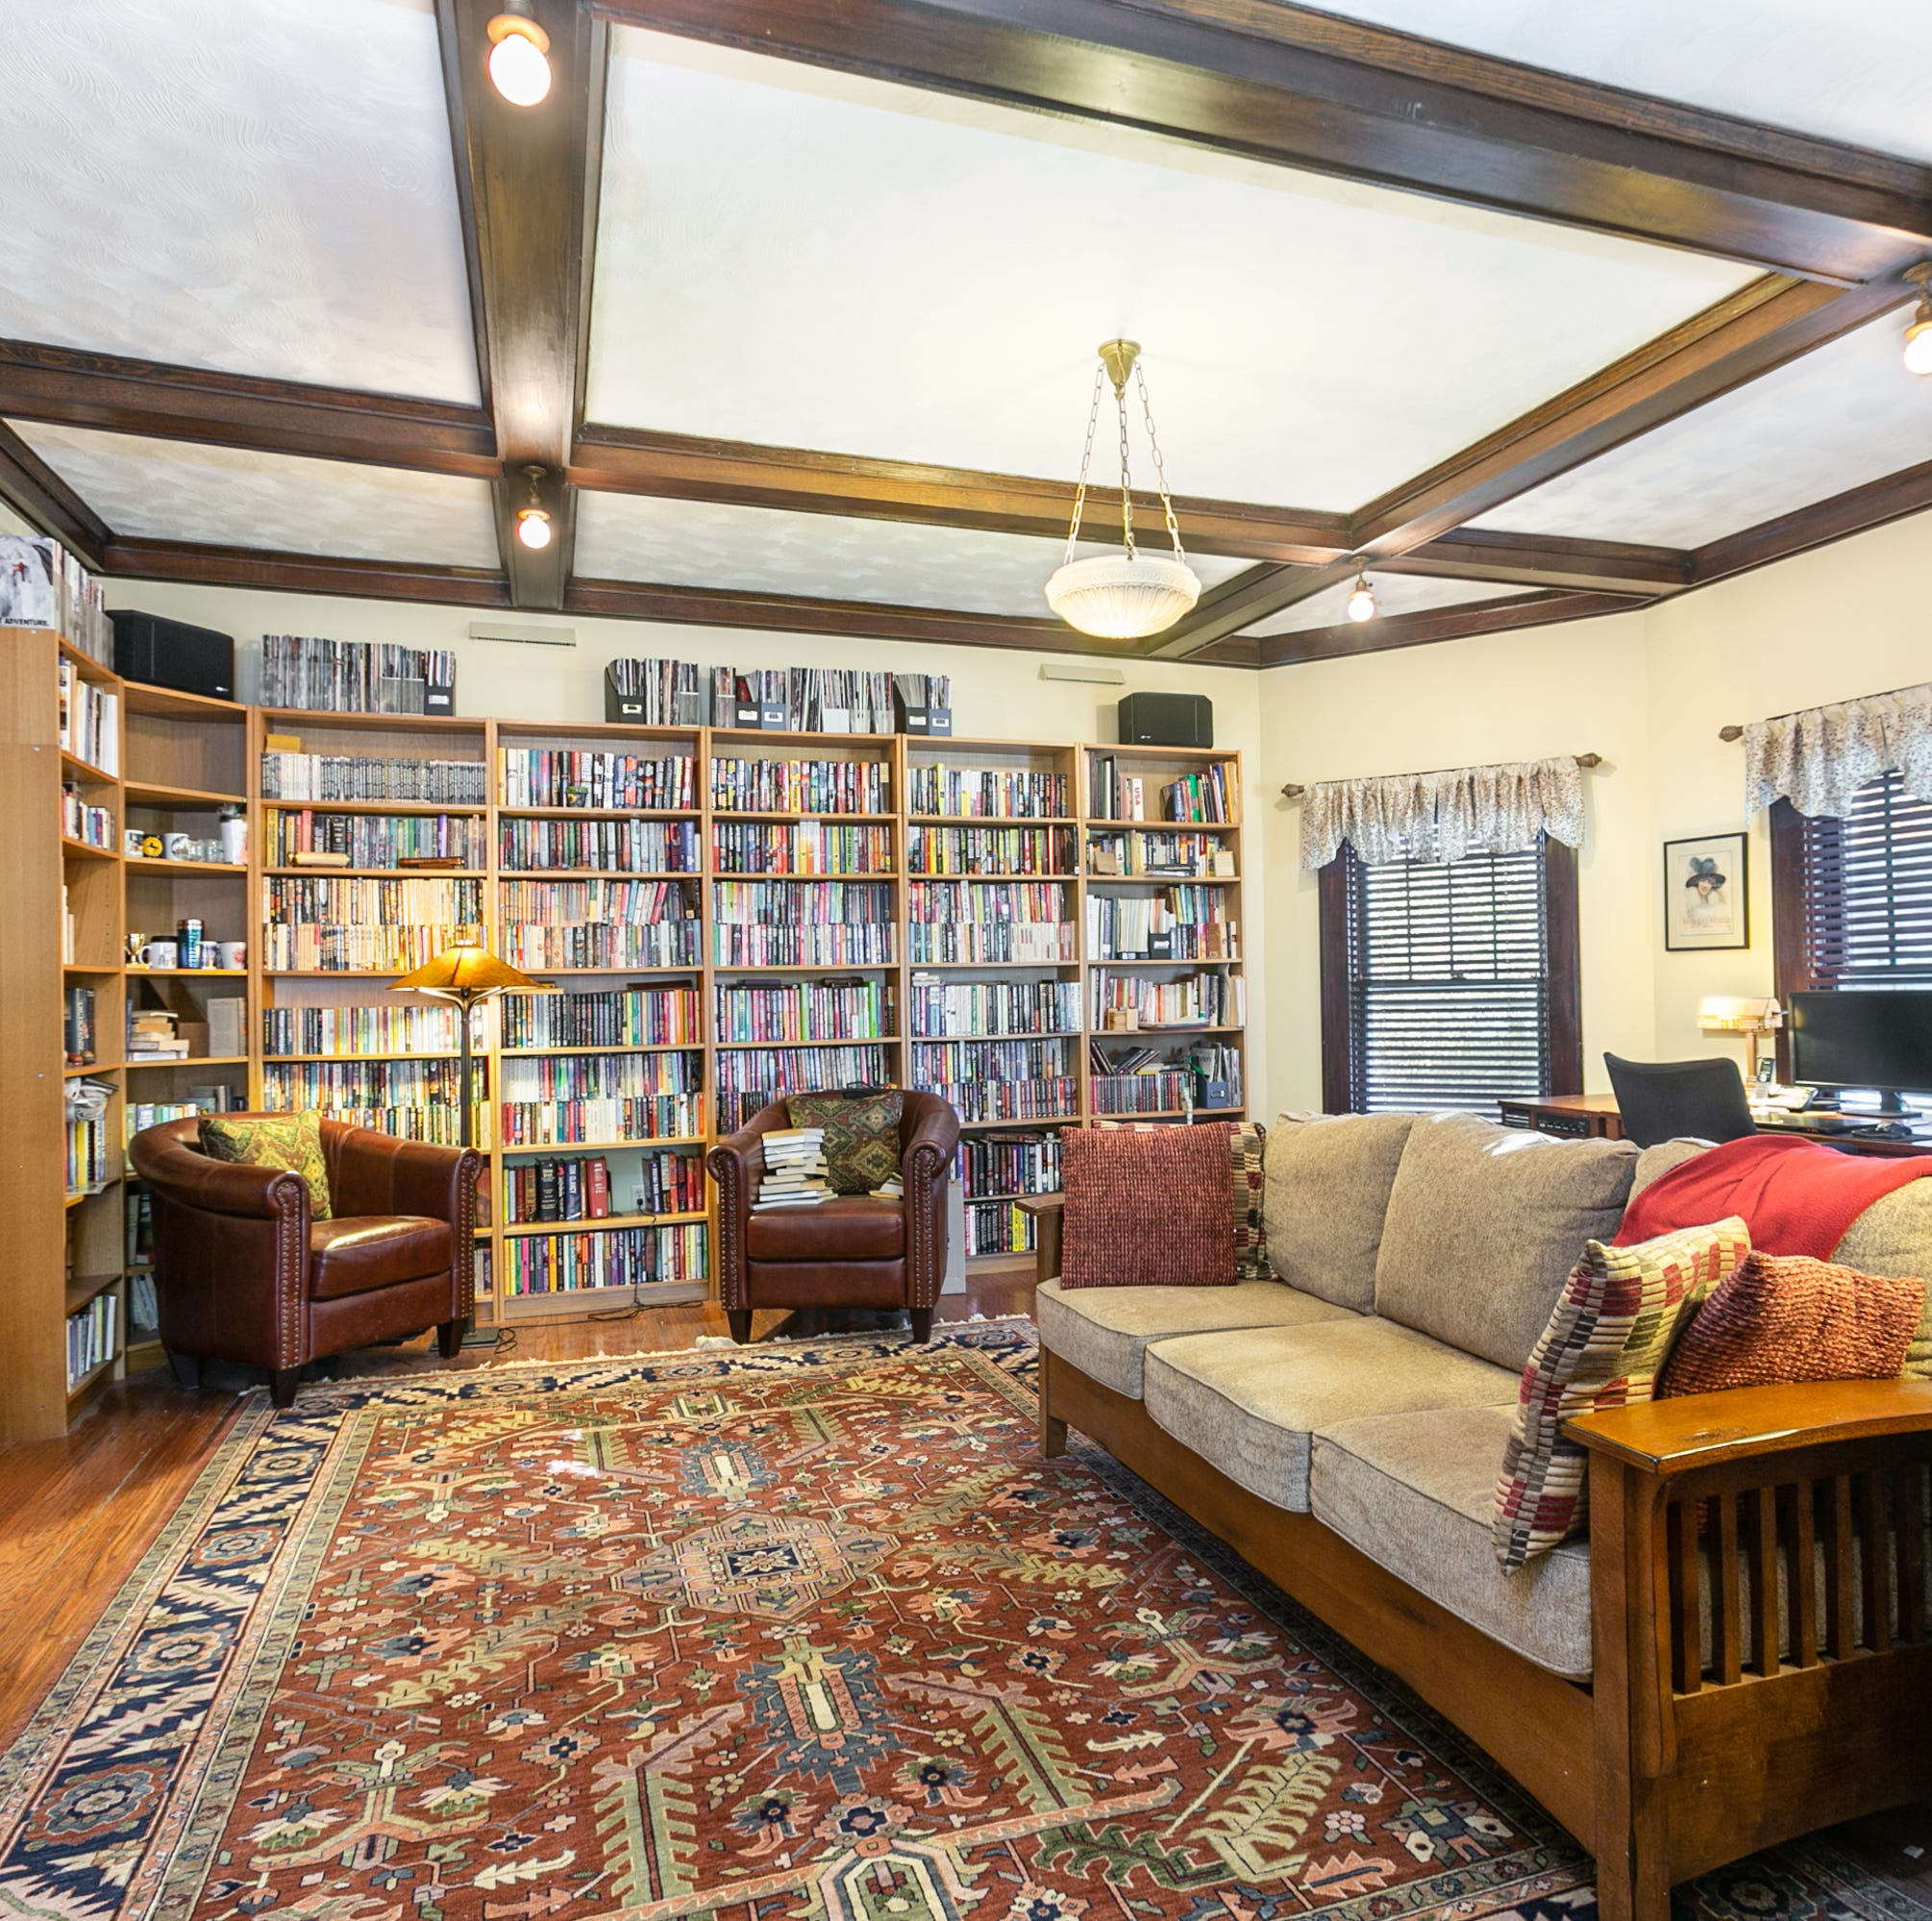 Midtown home's owner fell in love with library, leaded glass